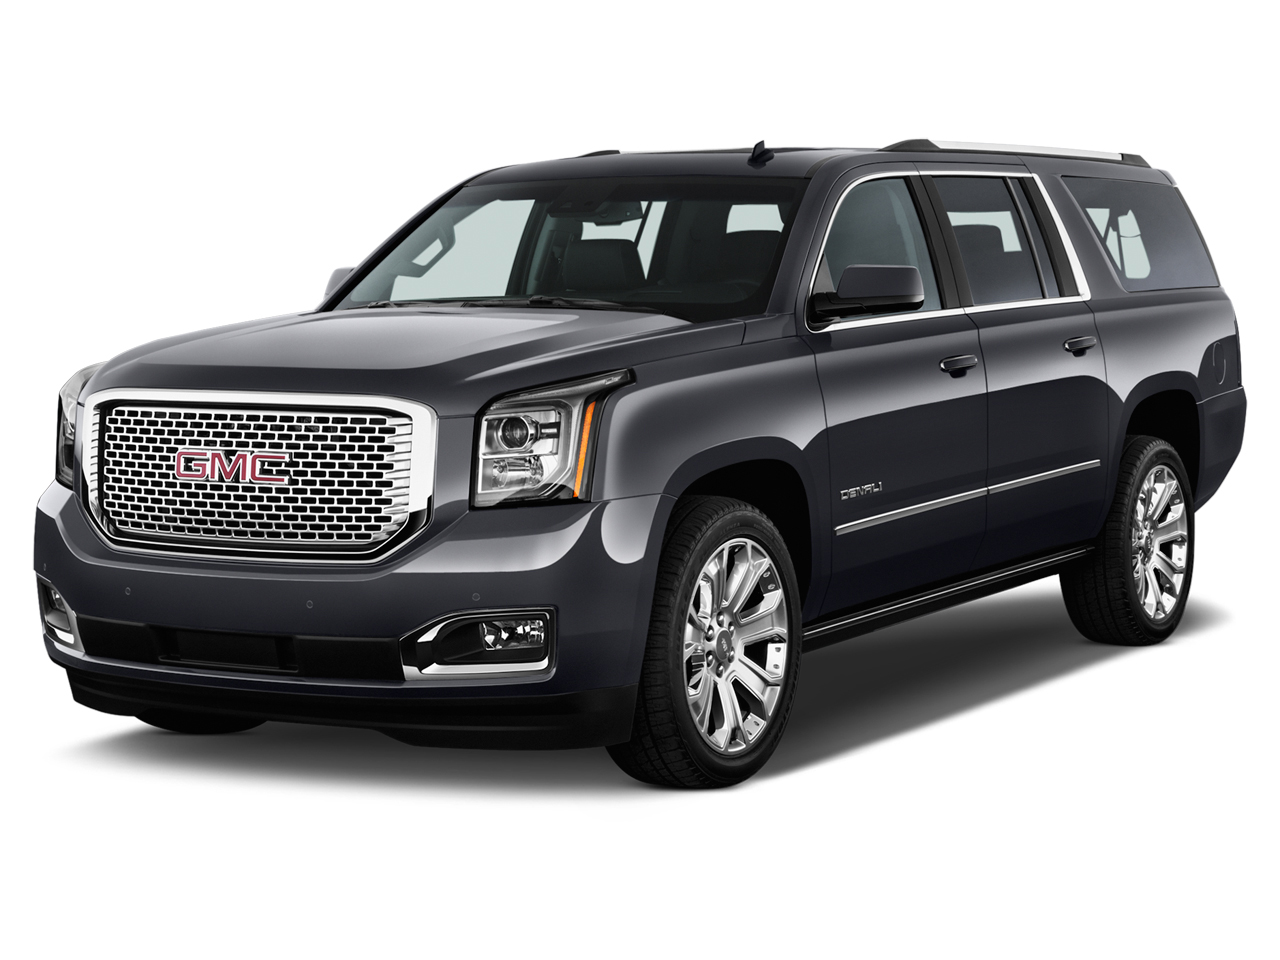 new and used gmc yukon xl prices photos reviews specs the car connection. Black Bedroom Furniture Sets. Home Design Ideas